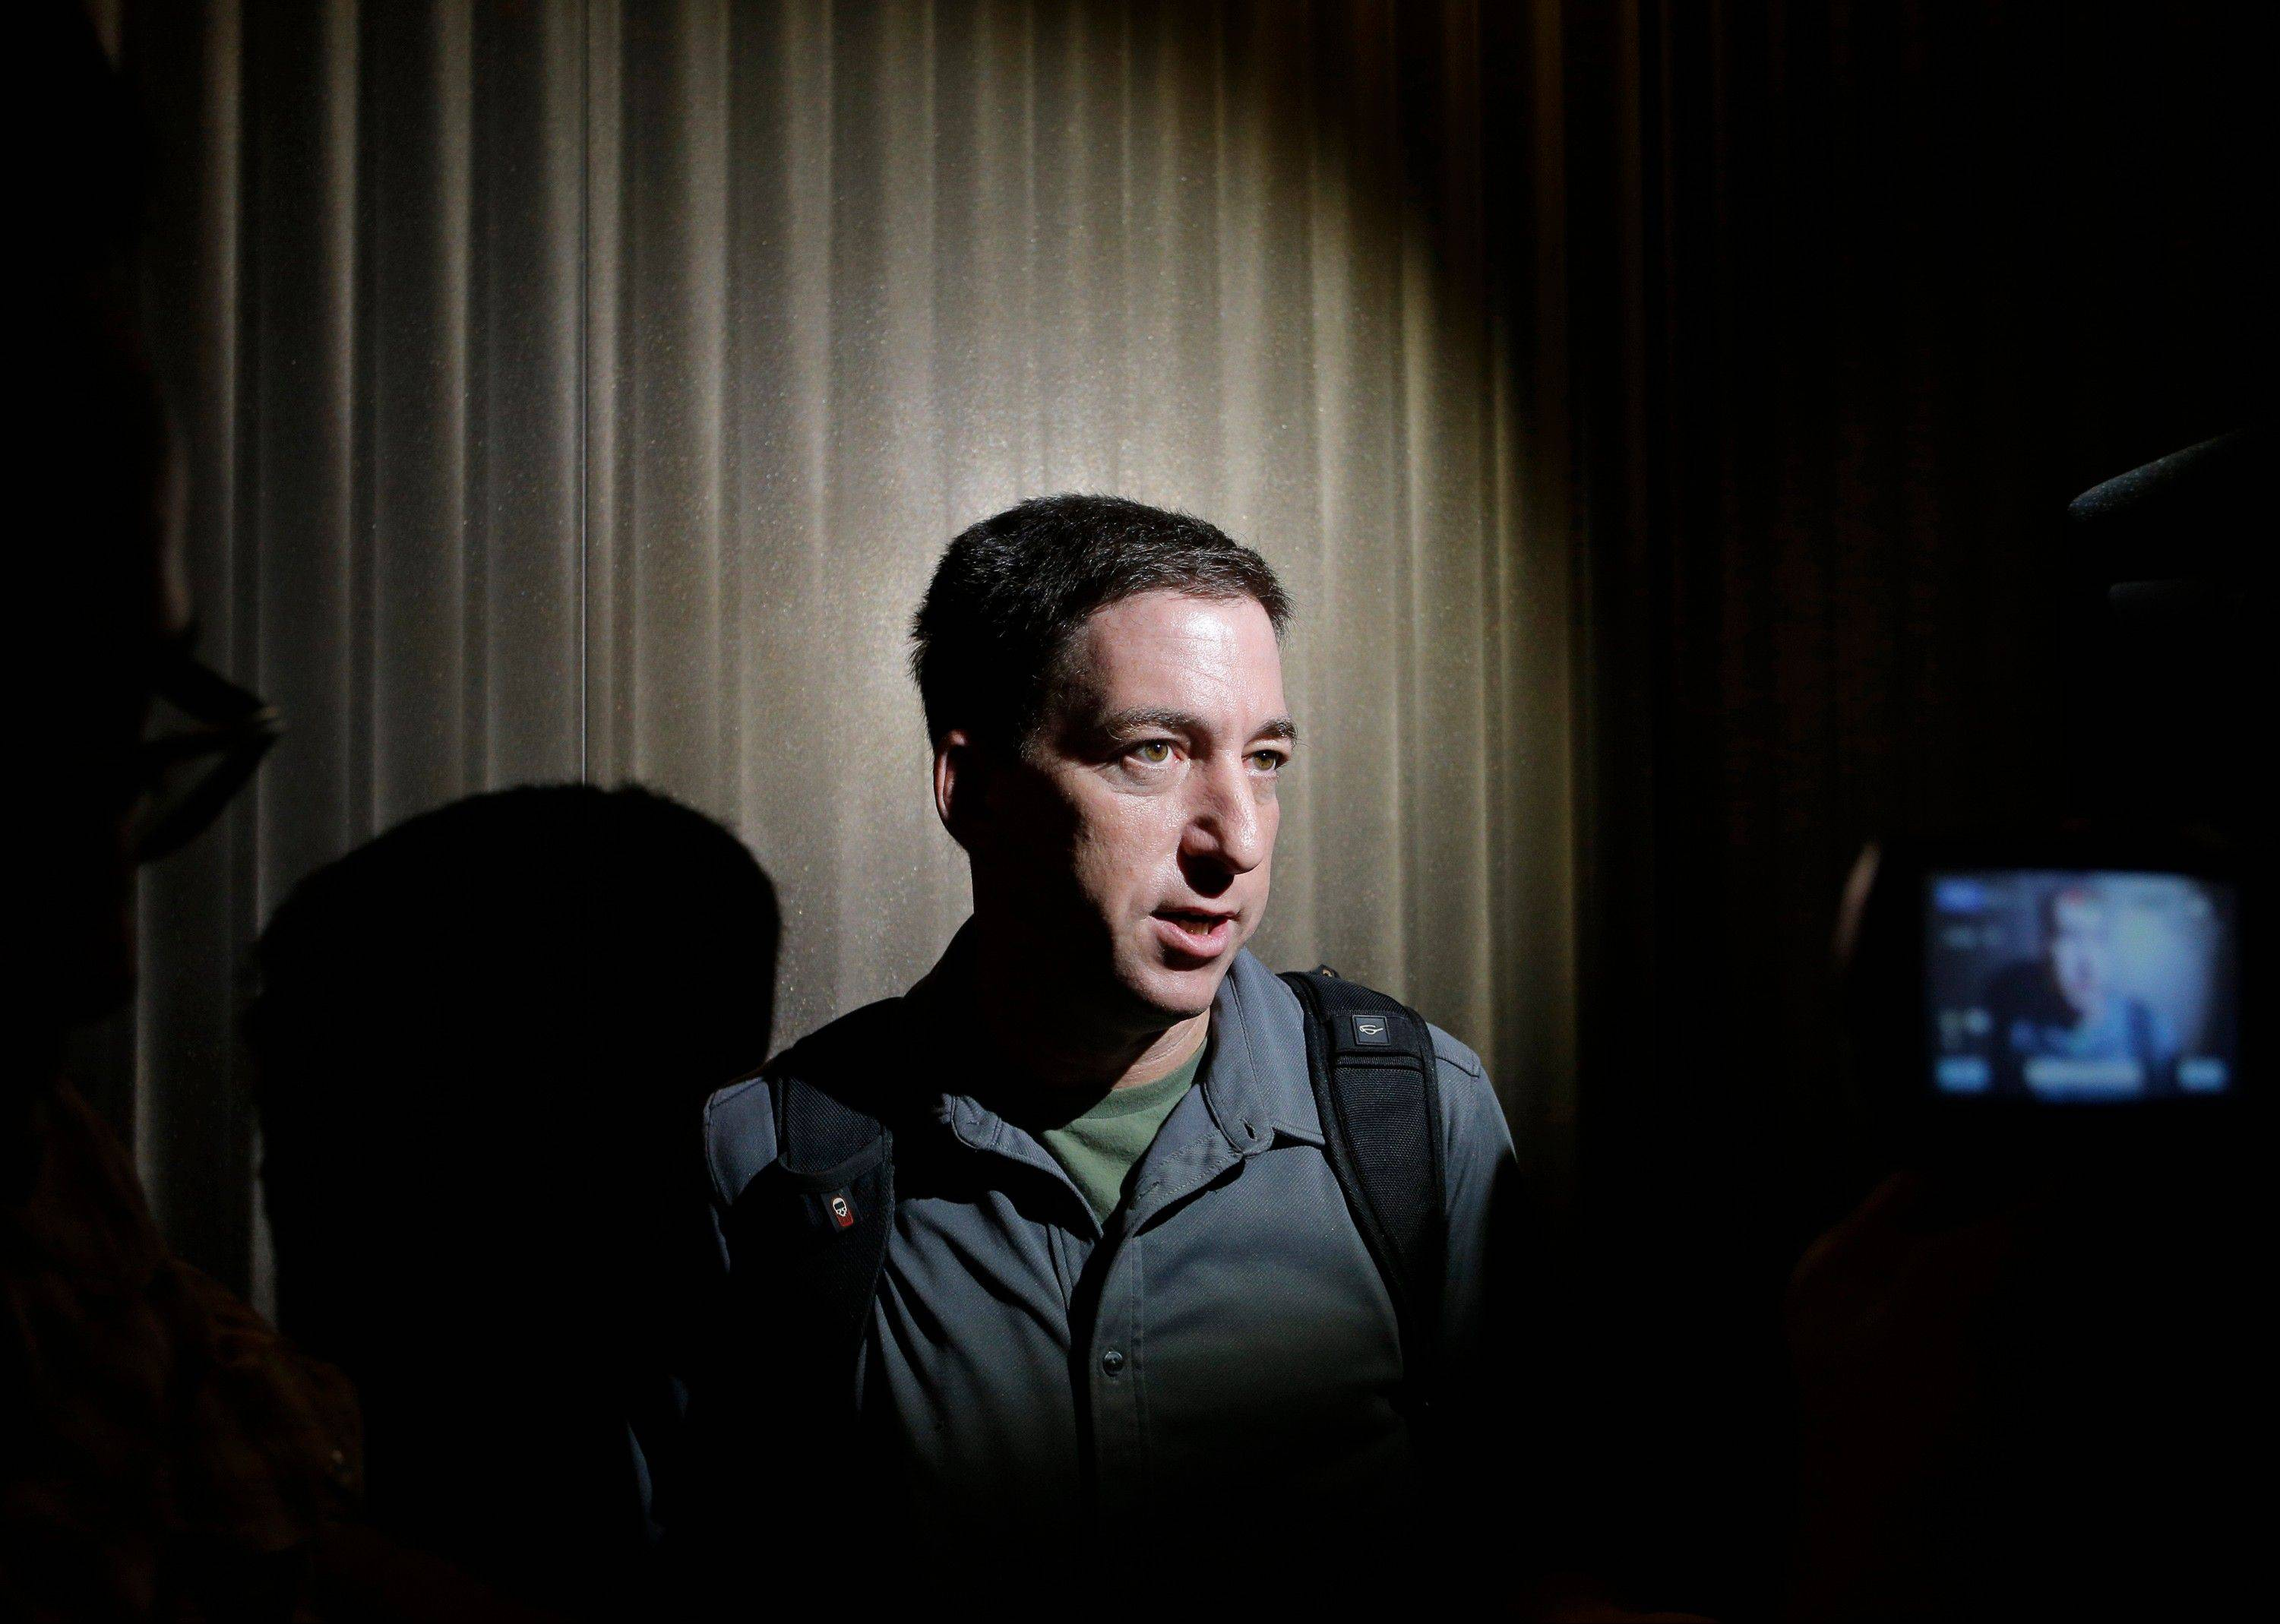 Glenn Greenwald, a columnist for The Guardian, has made no secret of his distaste for intrusions on privacy.